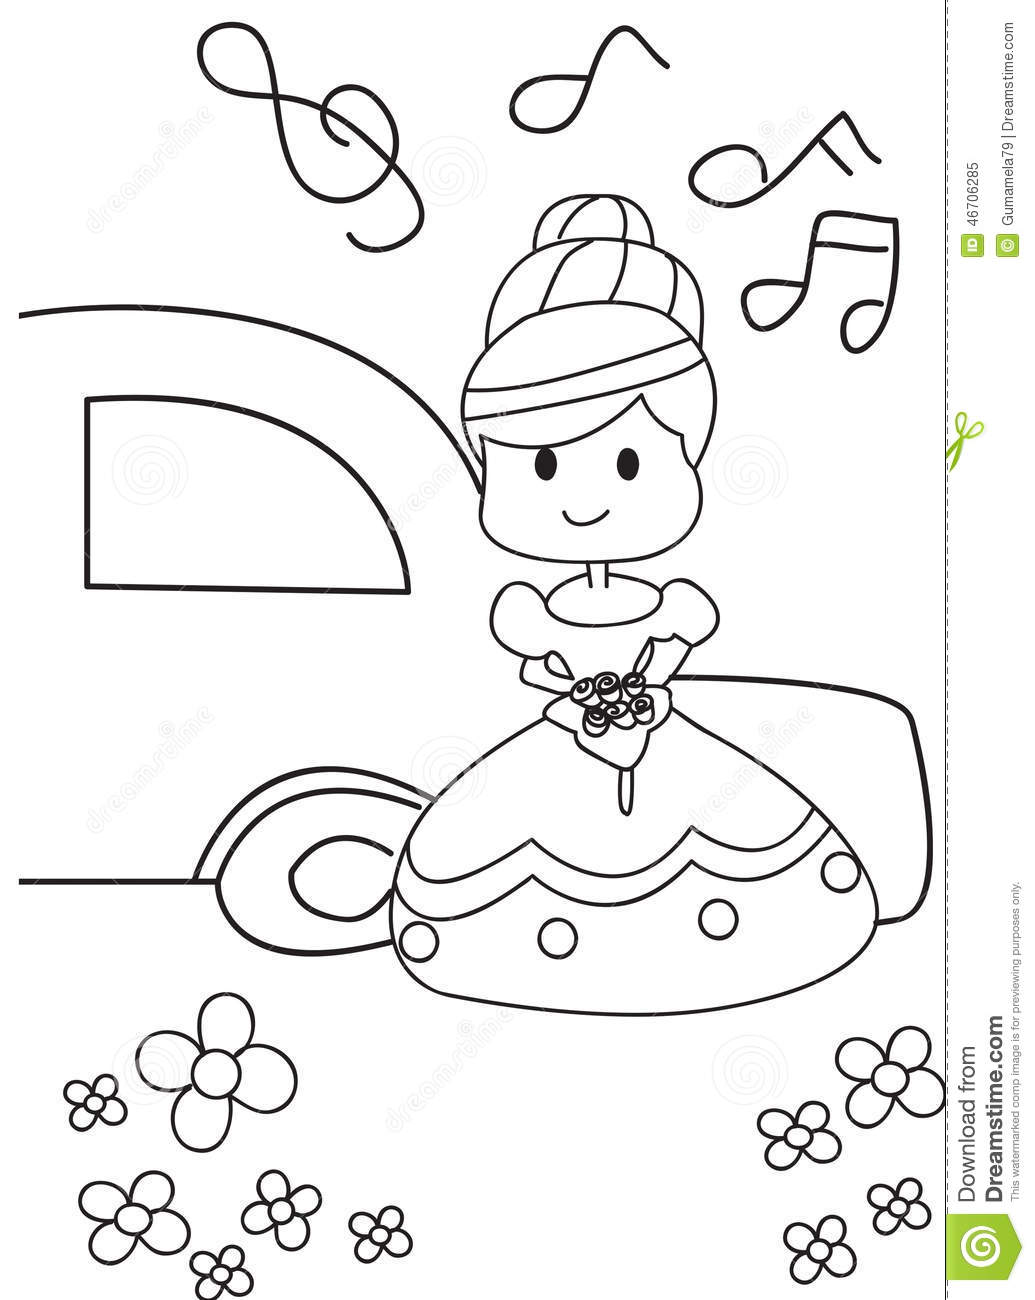 hand drawn coloring page of a bride getting married stock